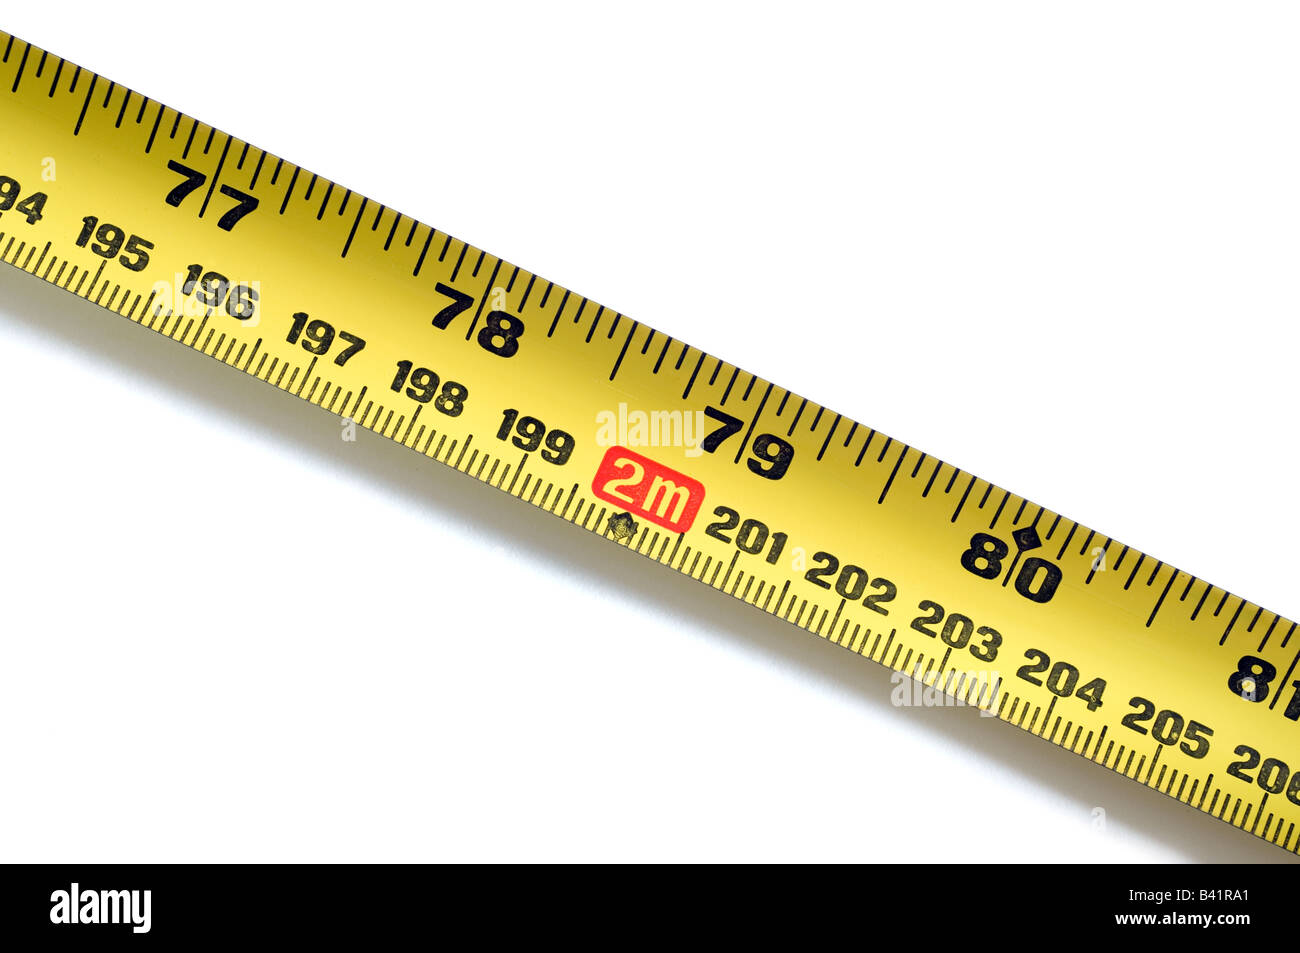 2 metres on a yellow steel rule - Stock Image